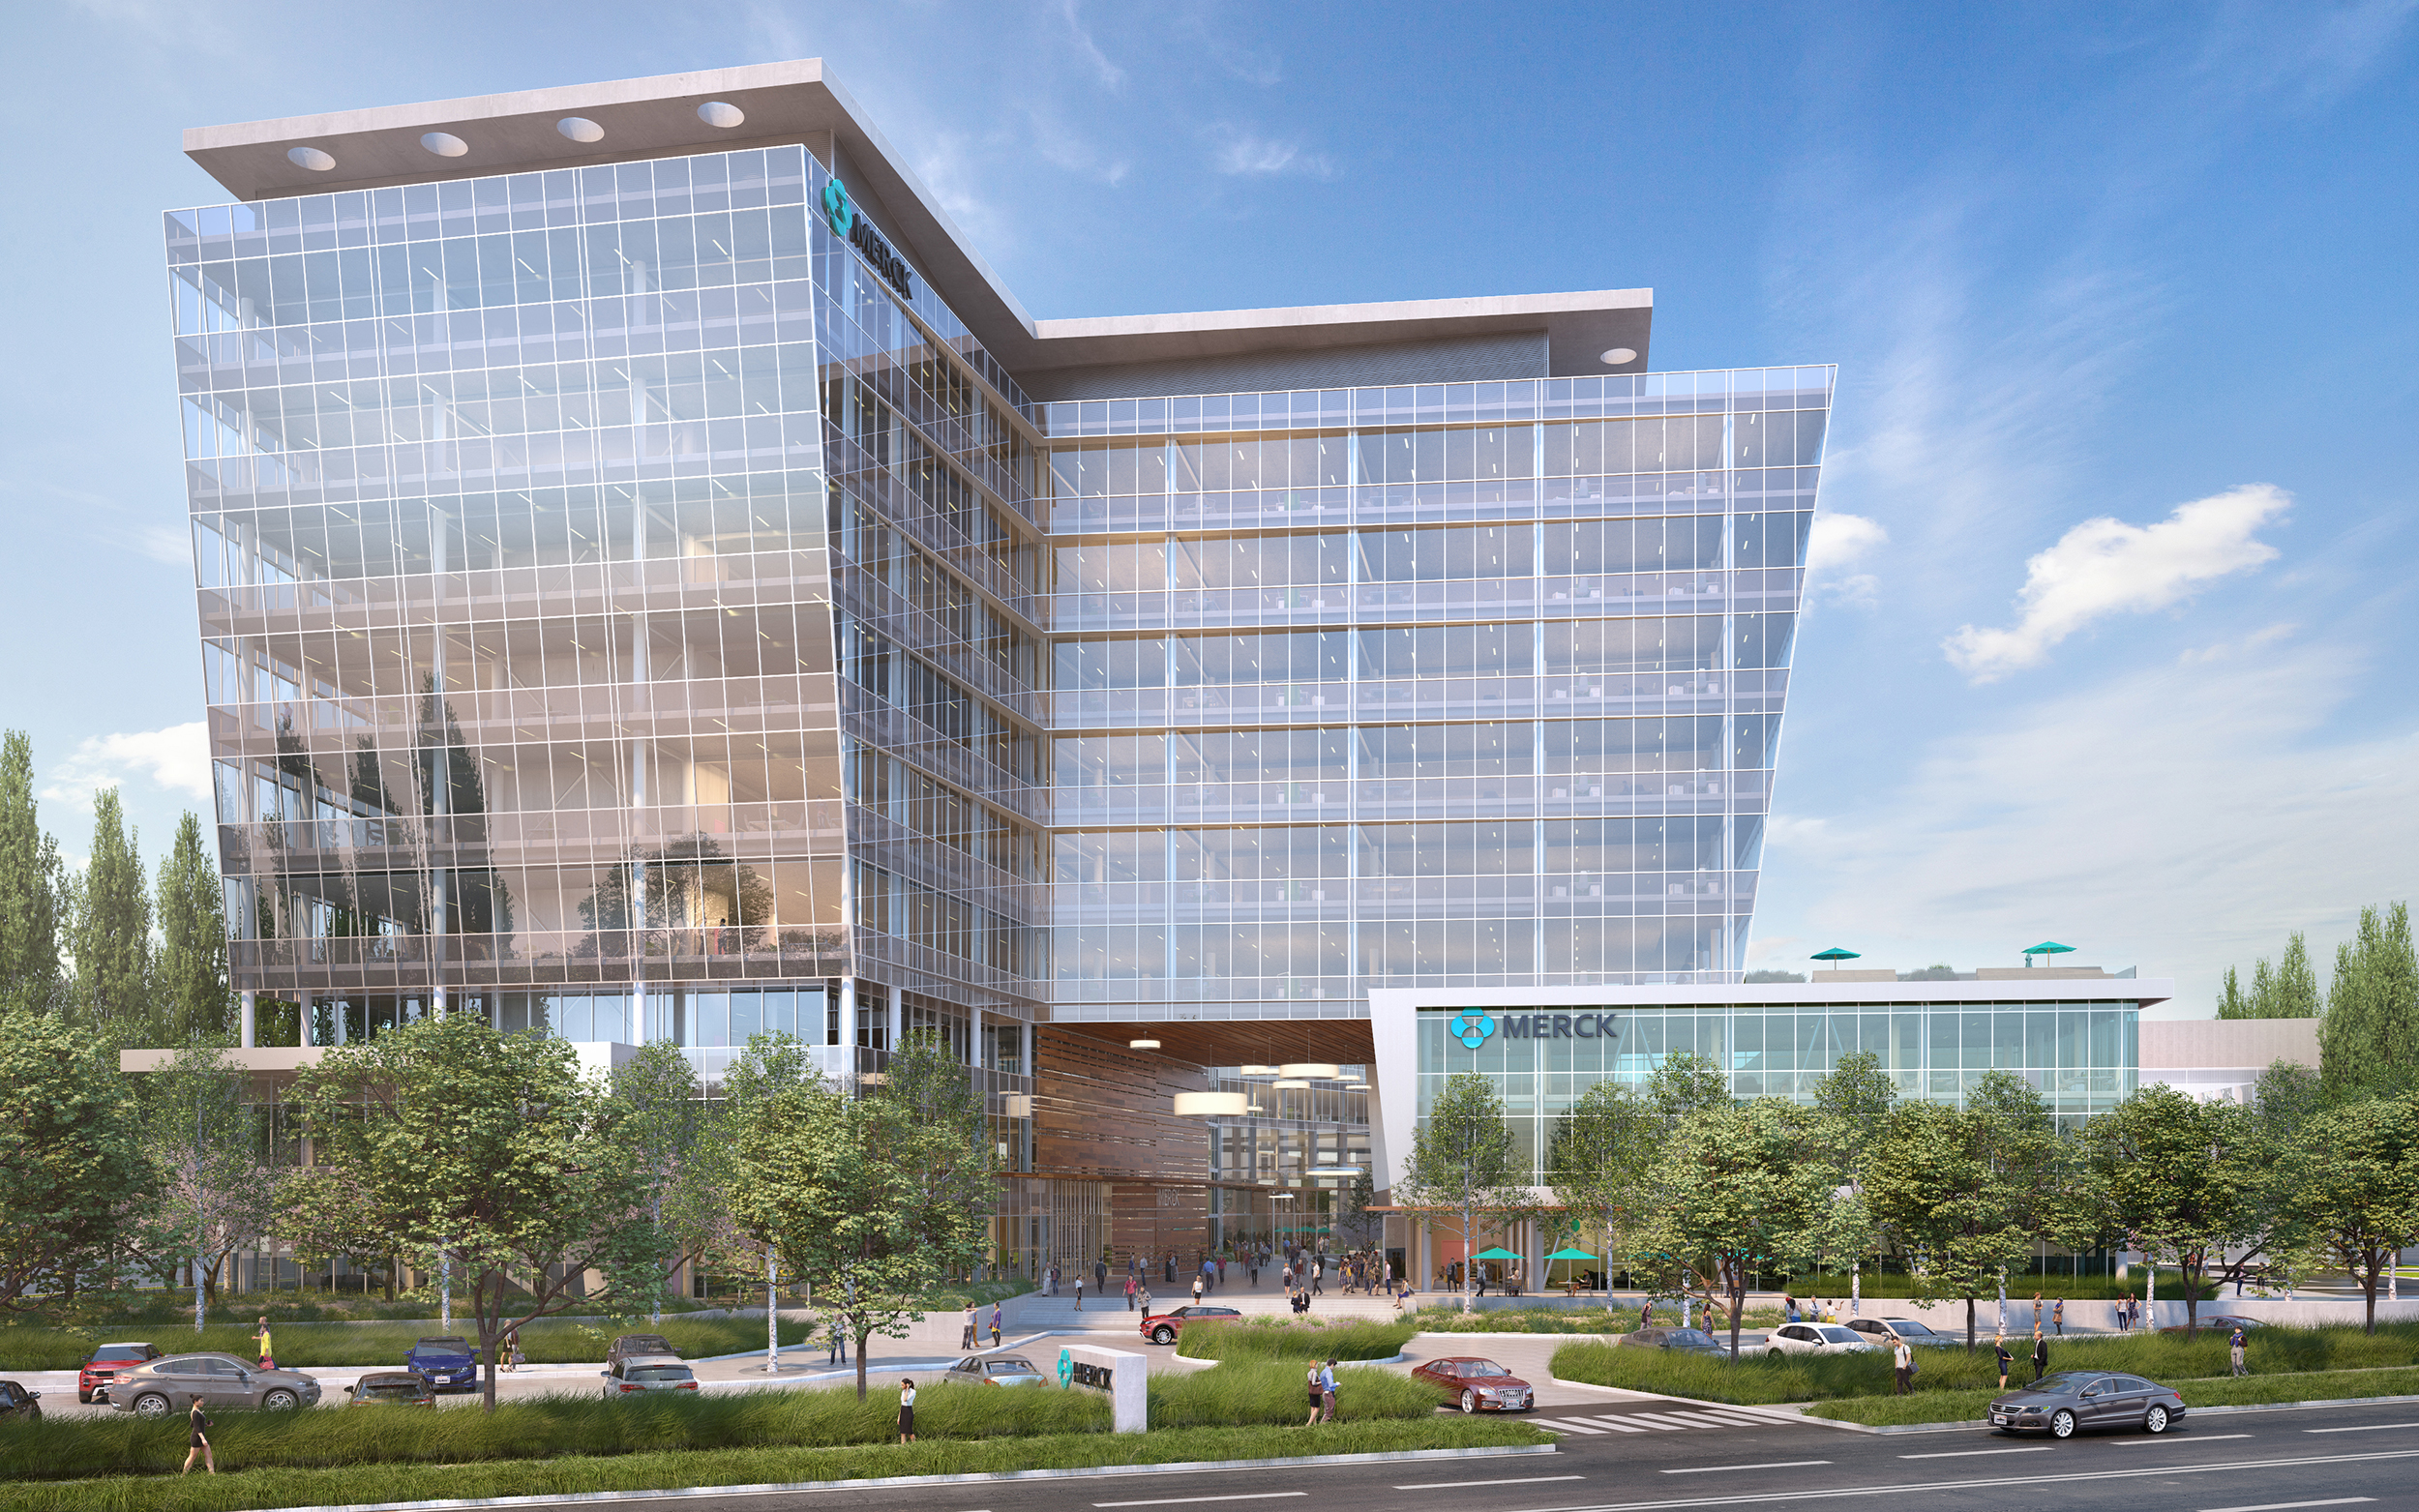 Alexandria will develop an R&D facility for Merck in South San Francisco.